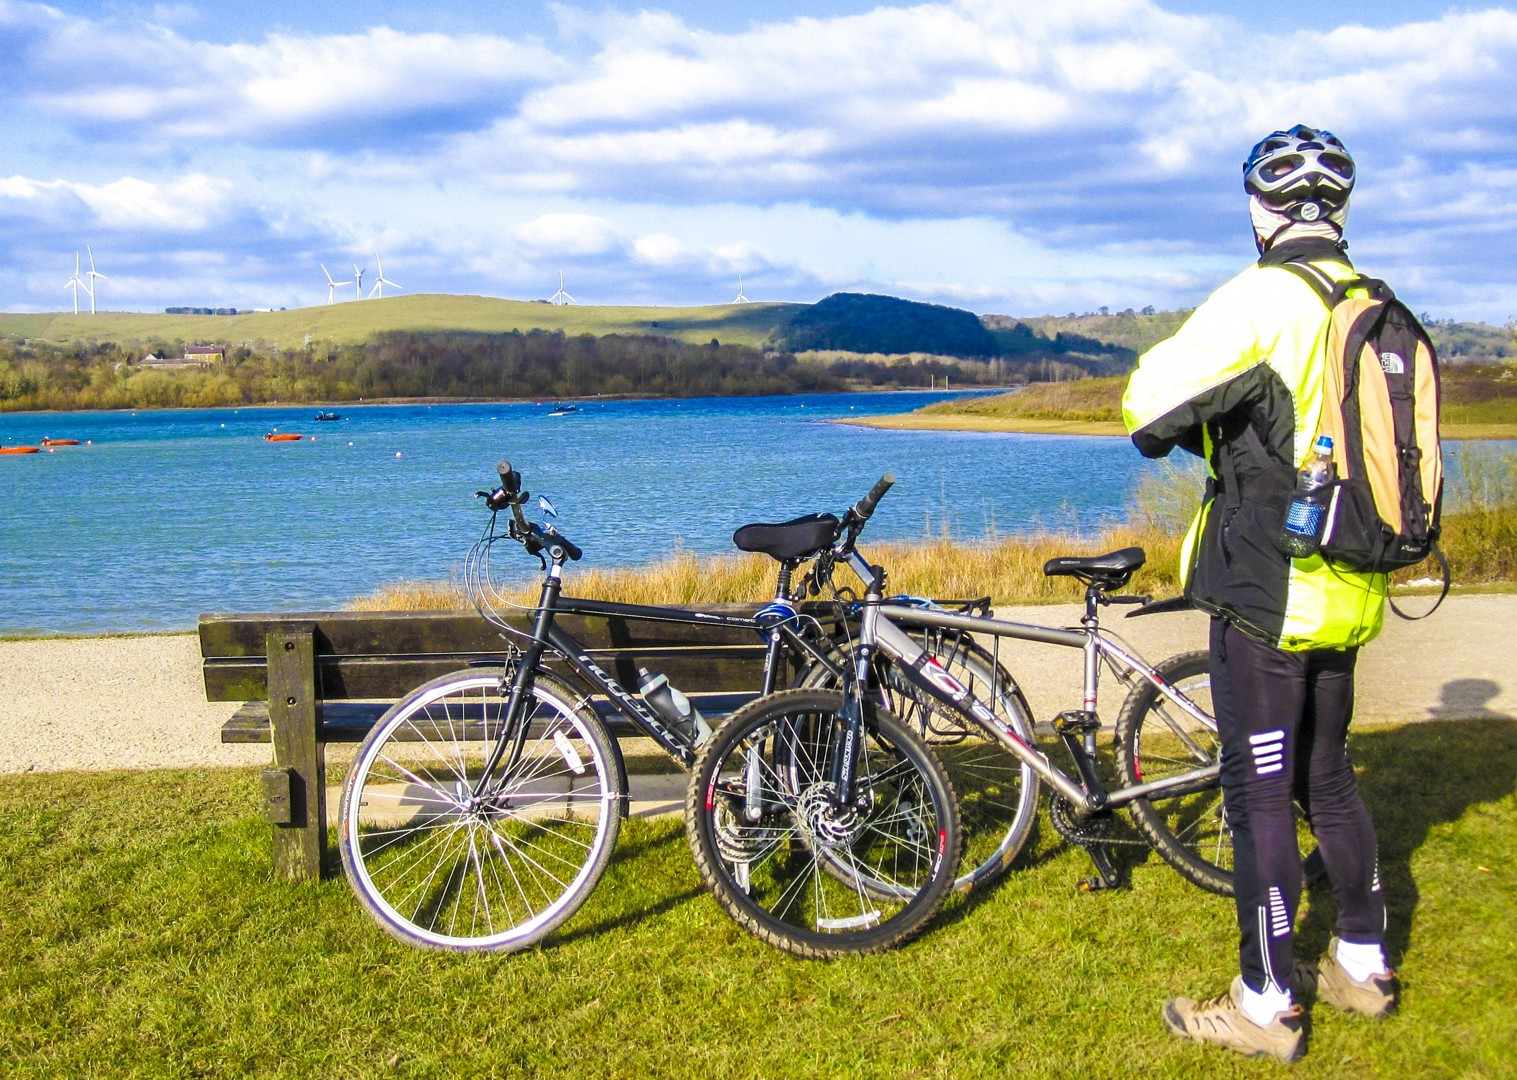 saddle-skedaddle-self-guided-cycling-leisure-british-countryside-lakes.jpg - UK - Derbyshire Dales - Dovedale - Self-Guided Leisure Cycling Holiday - Leisure Cycling